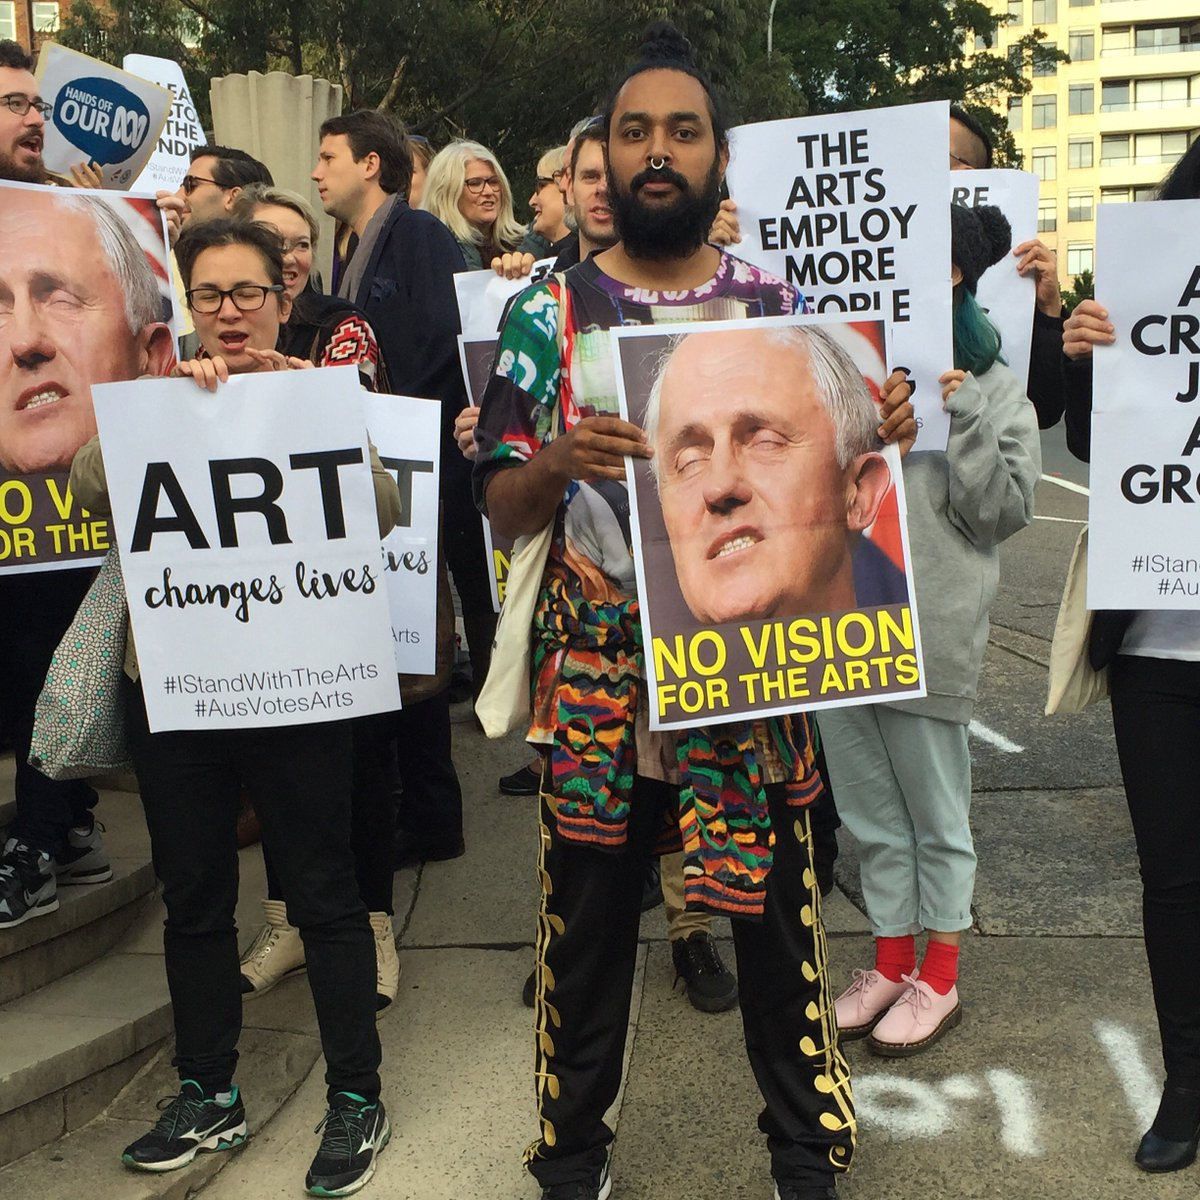 #istandwiththearts outside PMs Malcolm Turnbull's office this morning #AusVotesArts https://t.co/JOvsiss8Sx